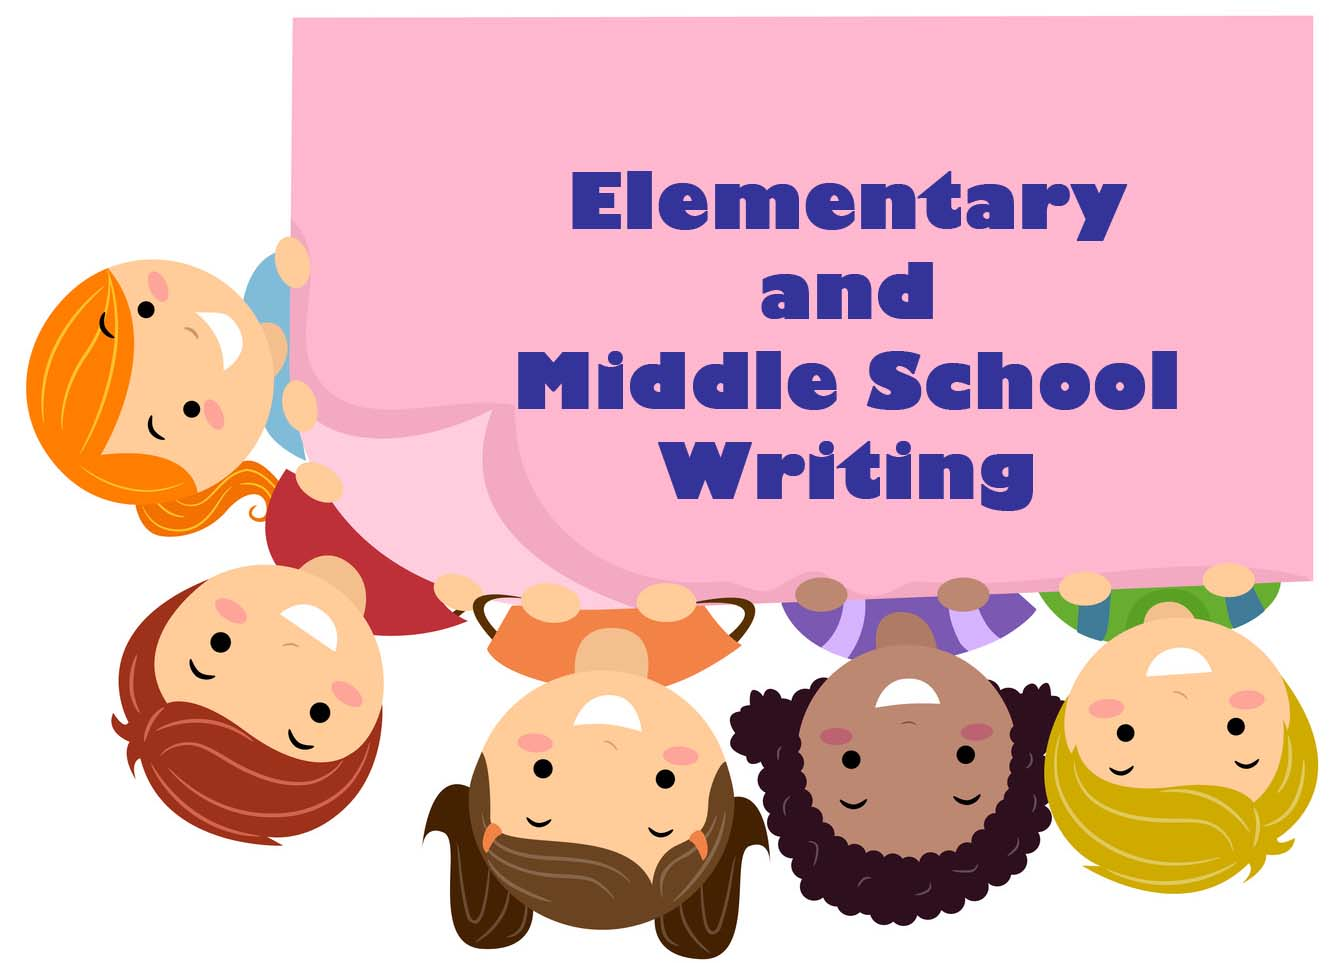 Elementary and Middle School Writing